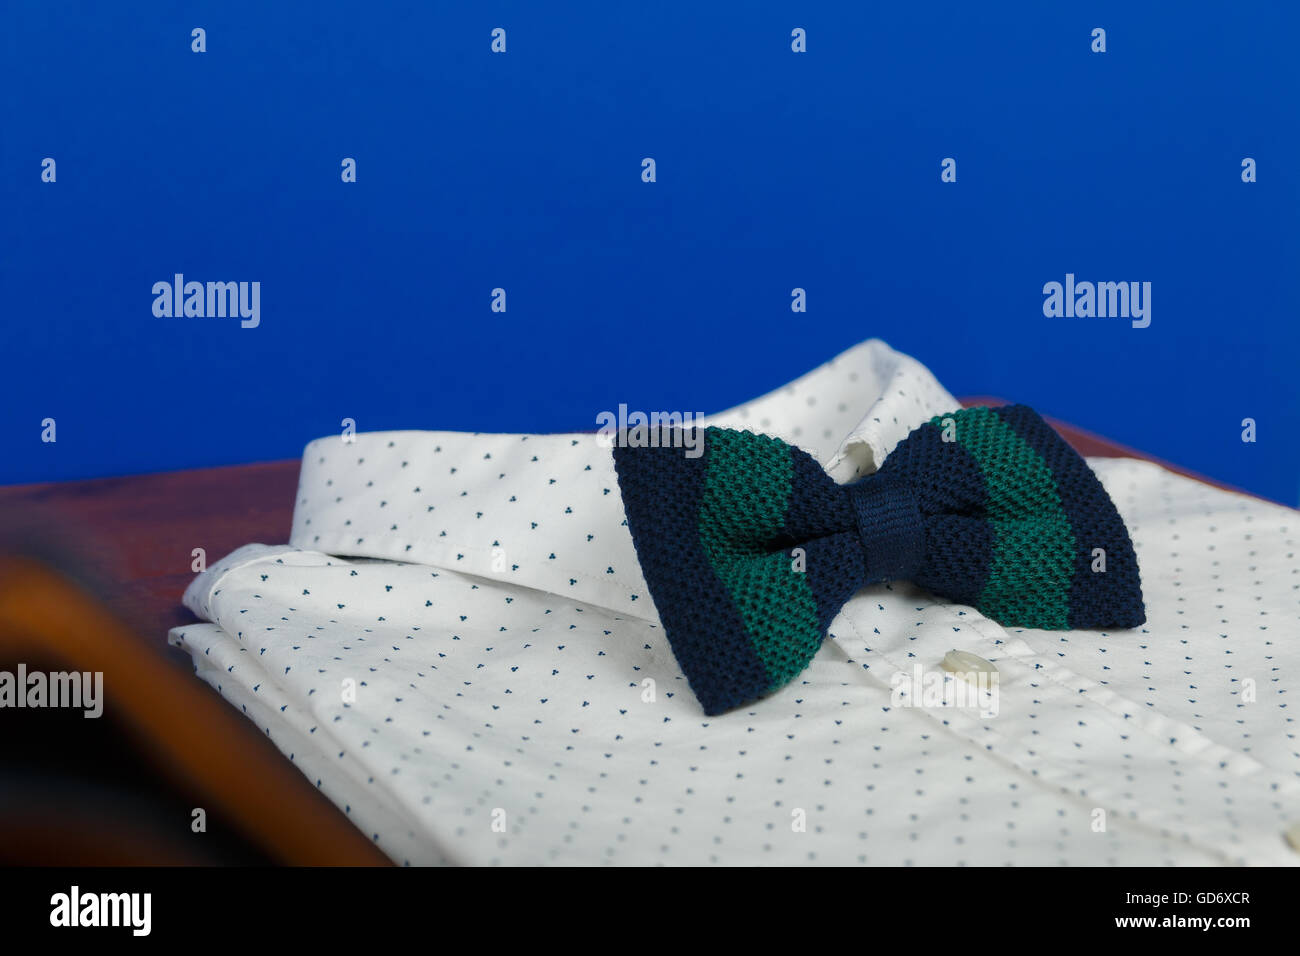 Elegant white polka-dot shirt with bow tie in green and blue stripes. - Stock Image